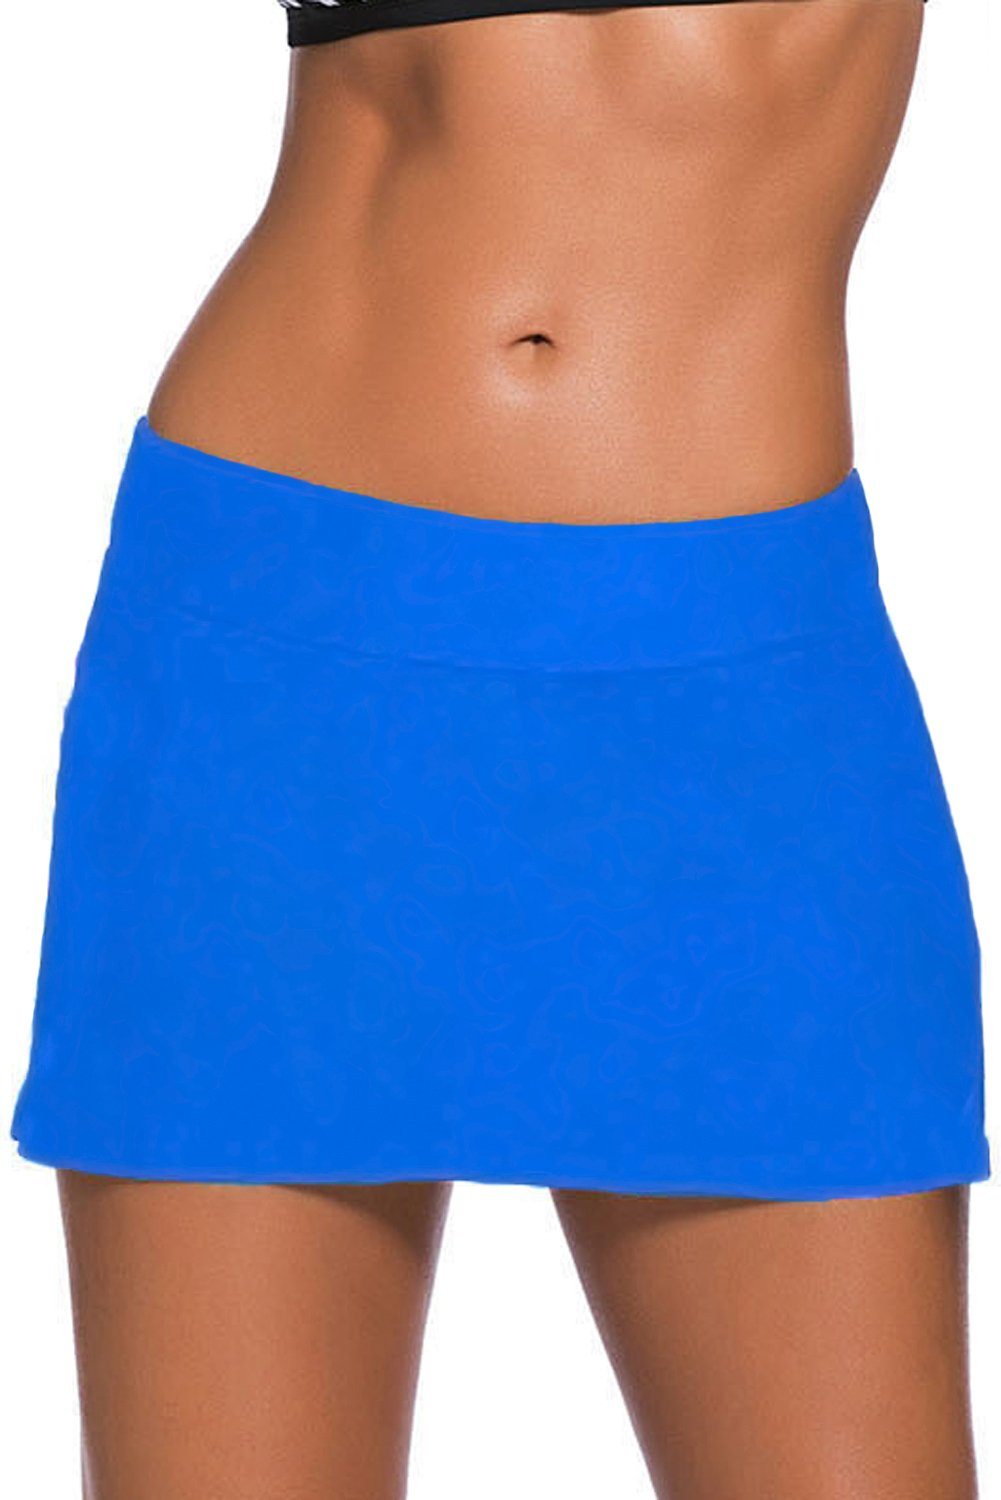 FuYang Womens Solid Elastic Swim Shorts, Skirted Bikini Bottoms Shorts with Brief Swimsuit Boardshorts (S-XXXXL)